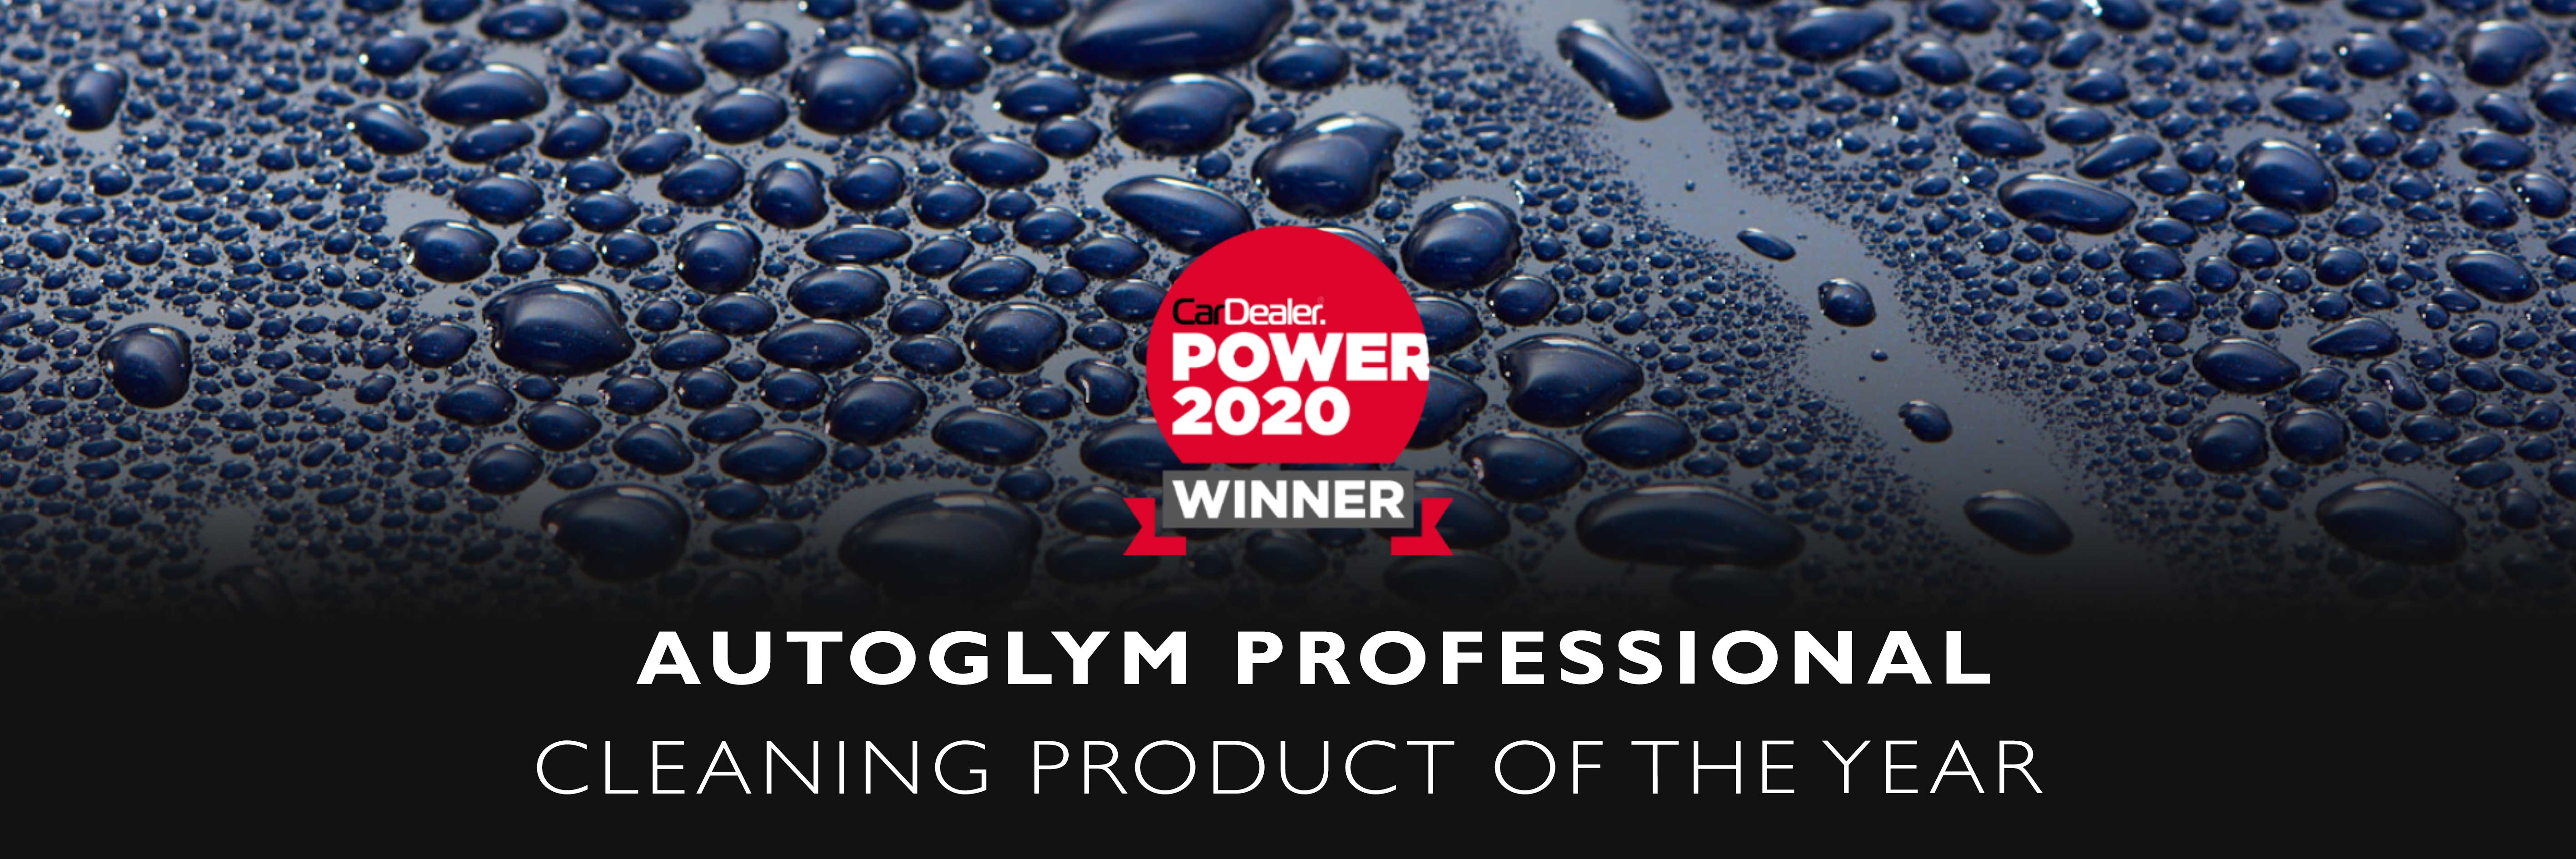 Autoglym Professional Car Dealer Power Cleaning Product of the Year 2020!